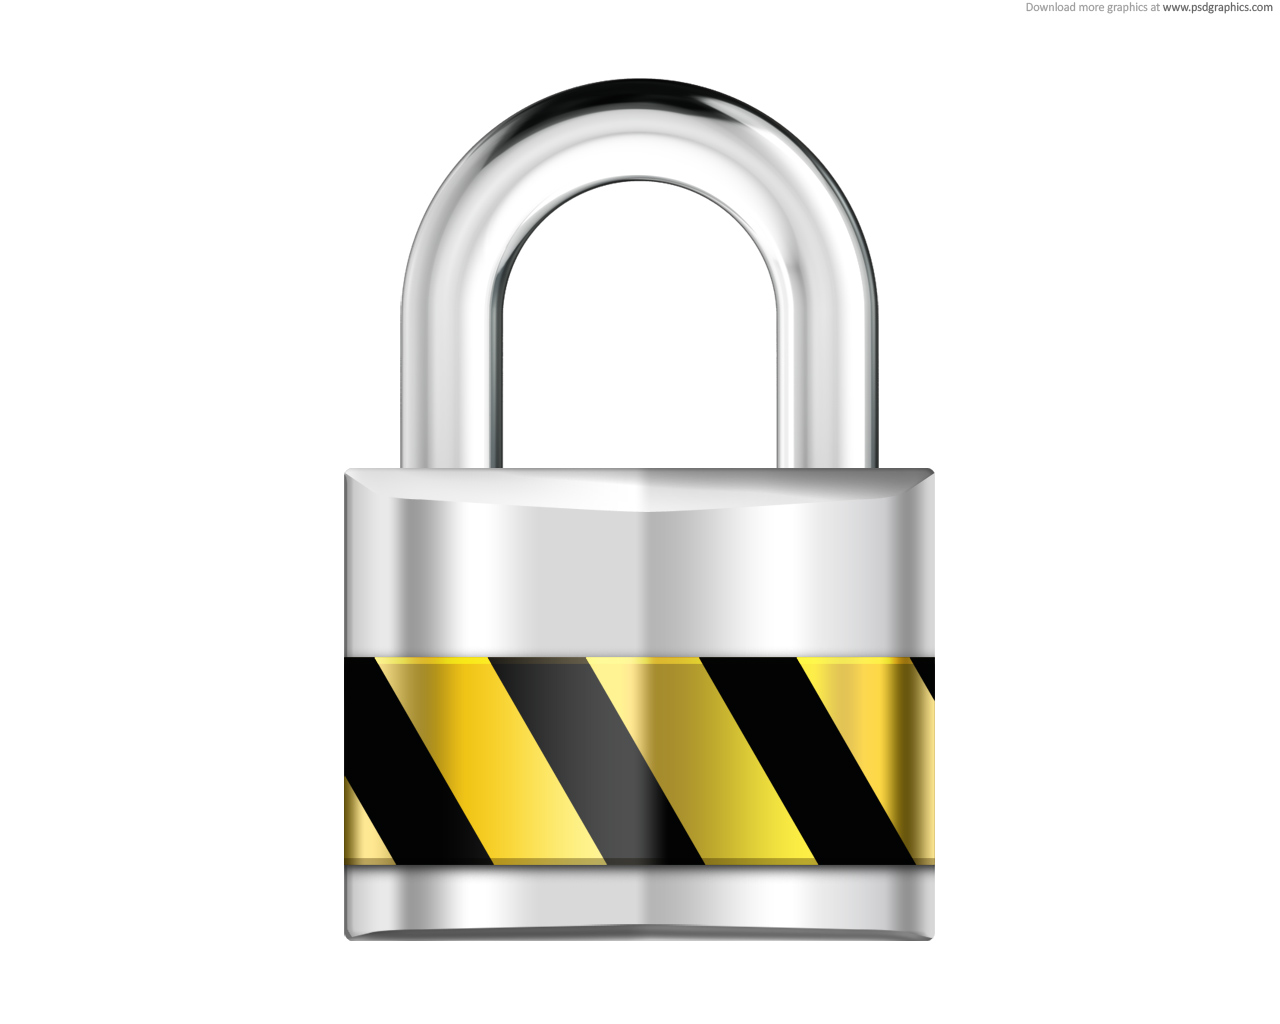 Master Padlock Unlock Code Download